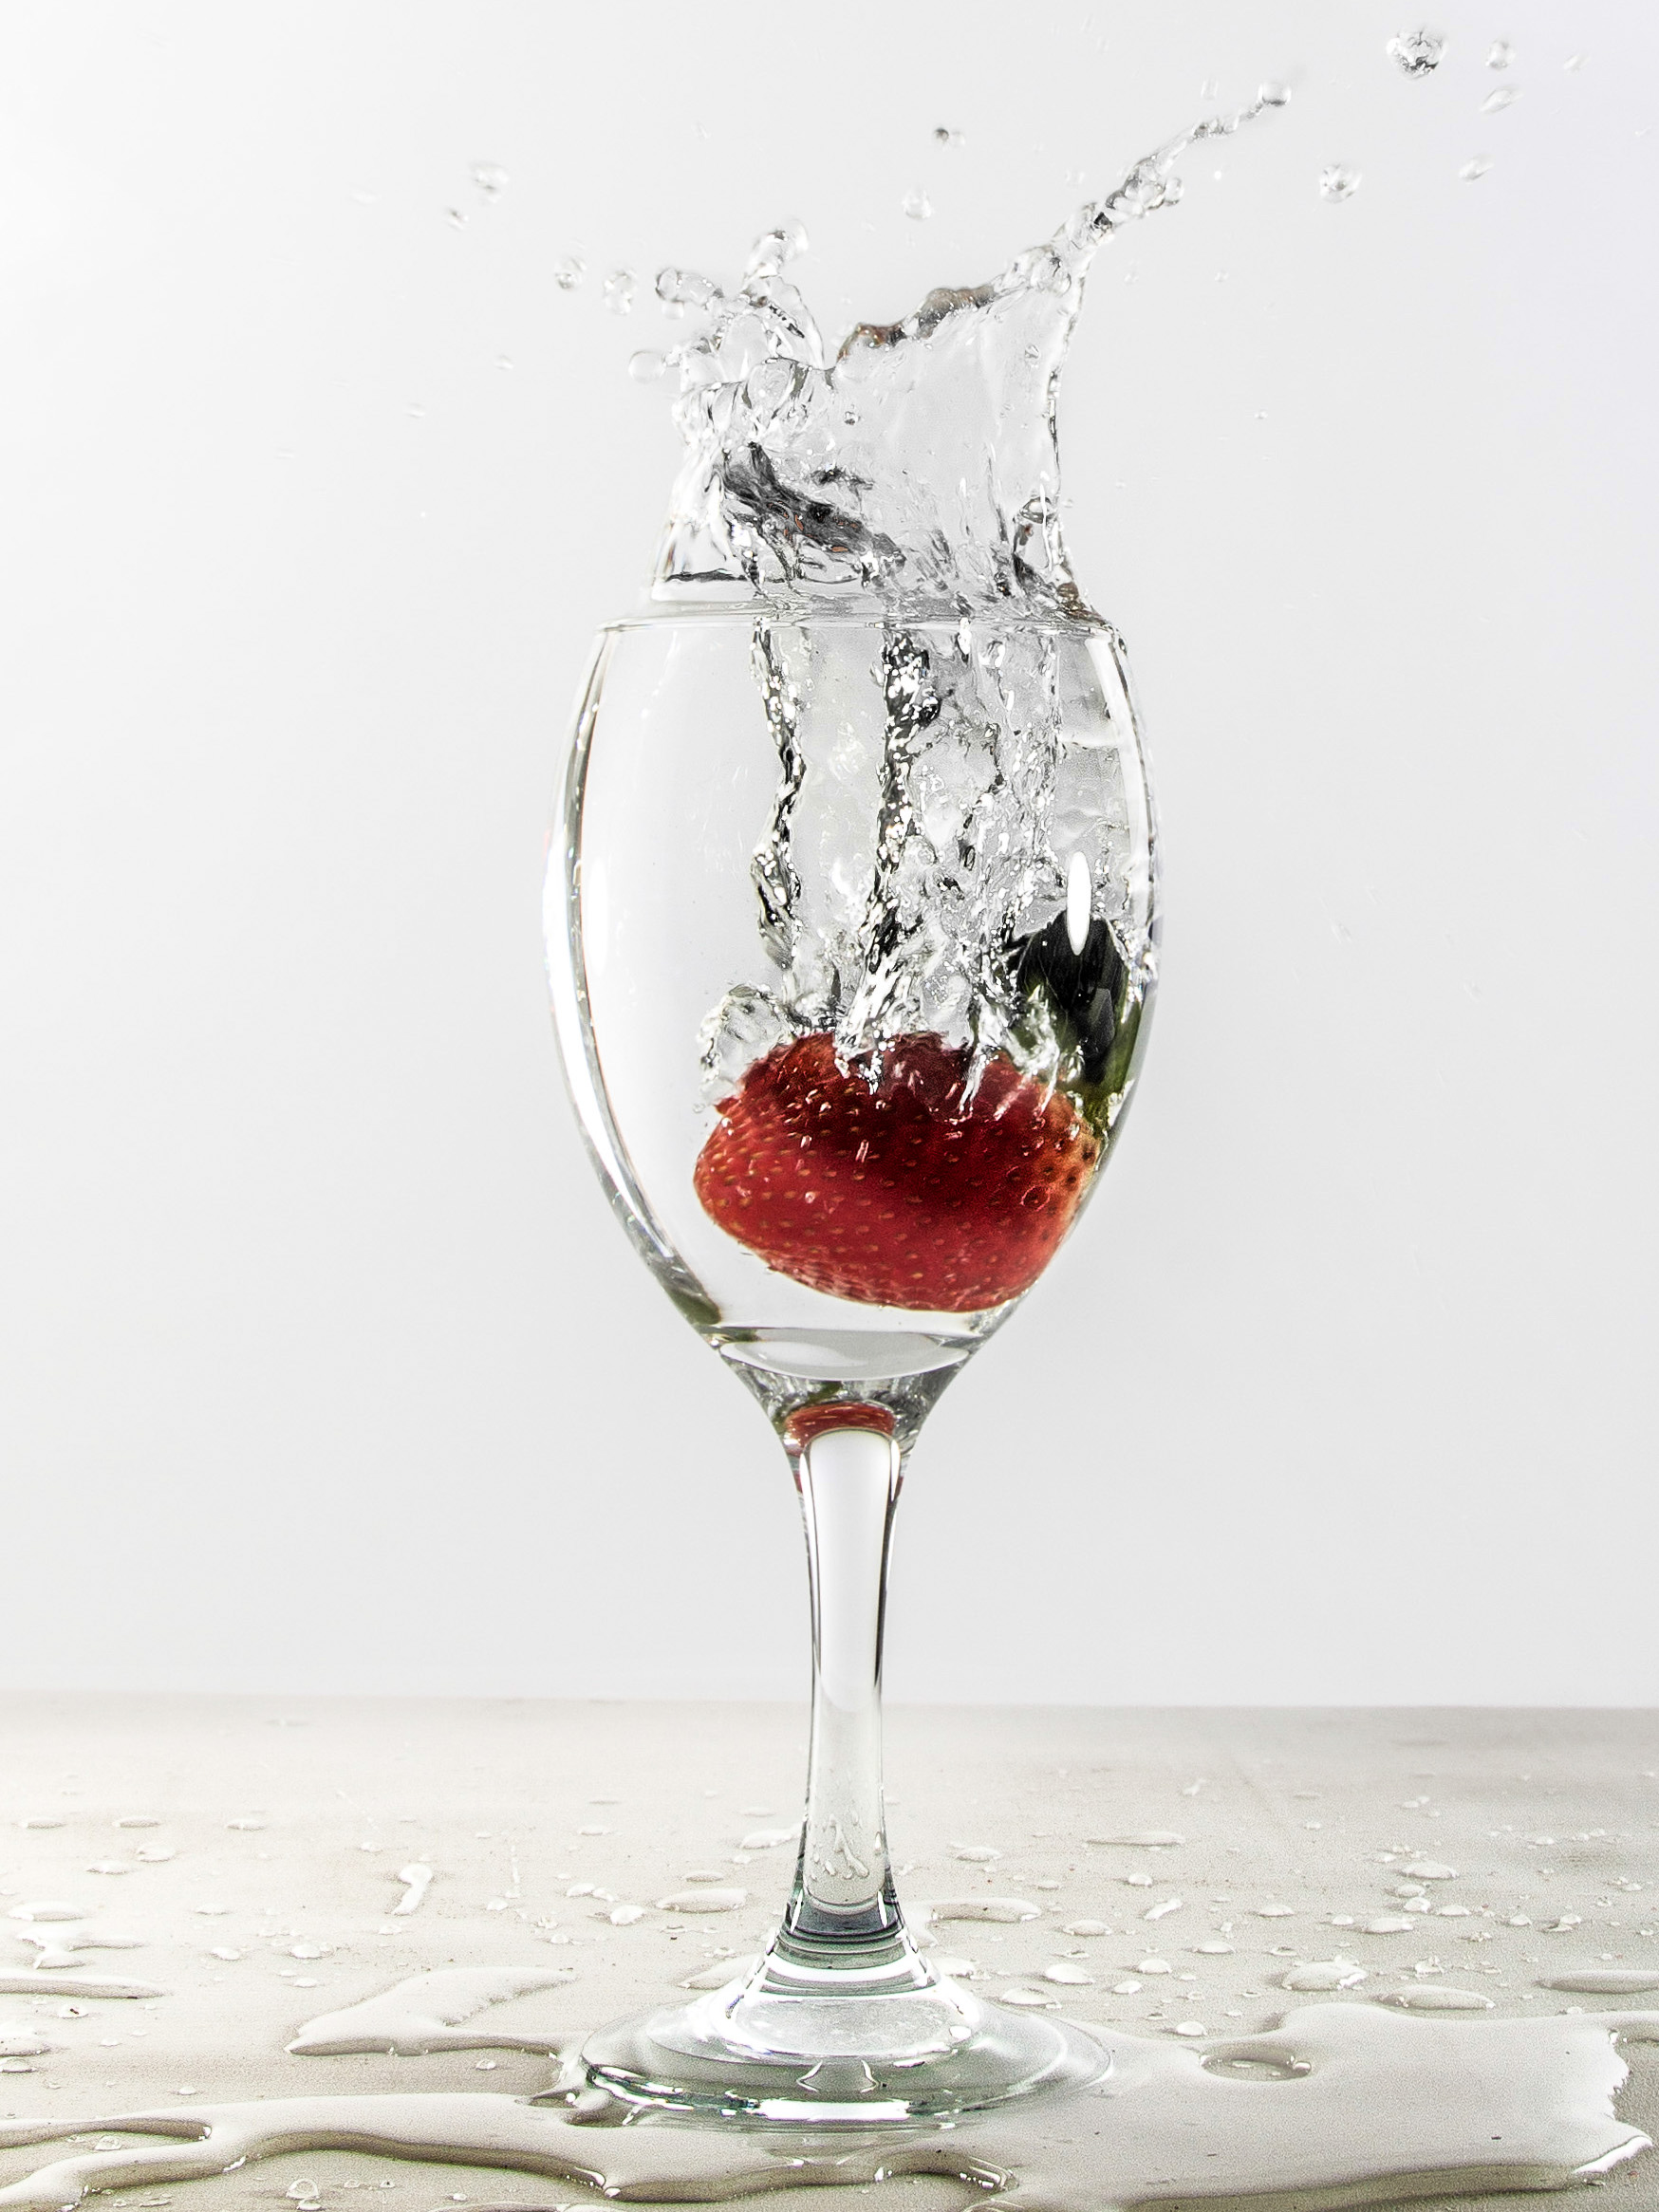 Image Fruit into water